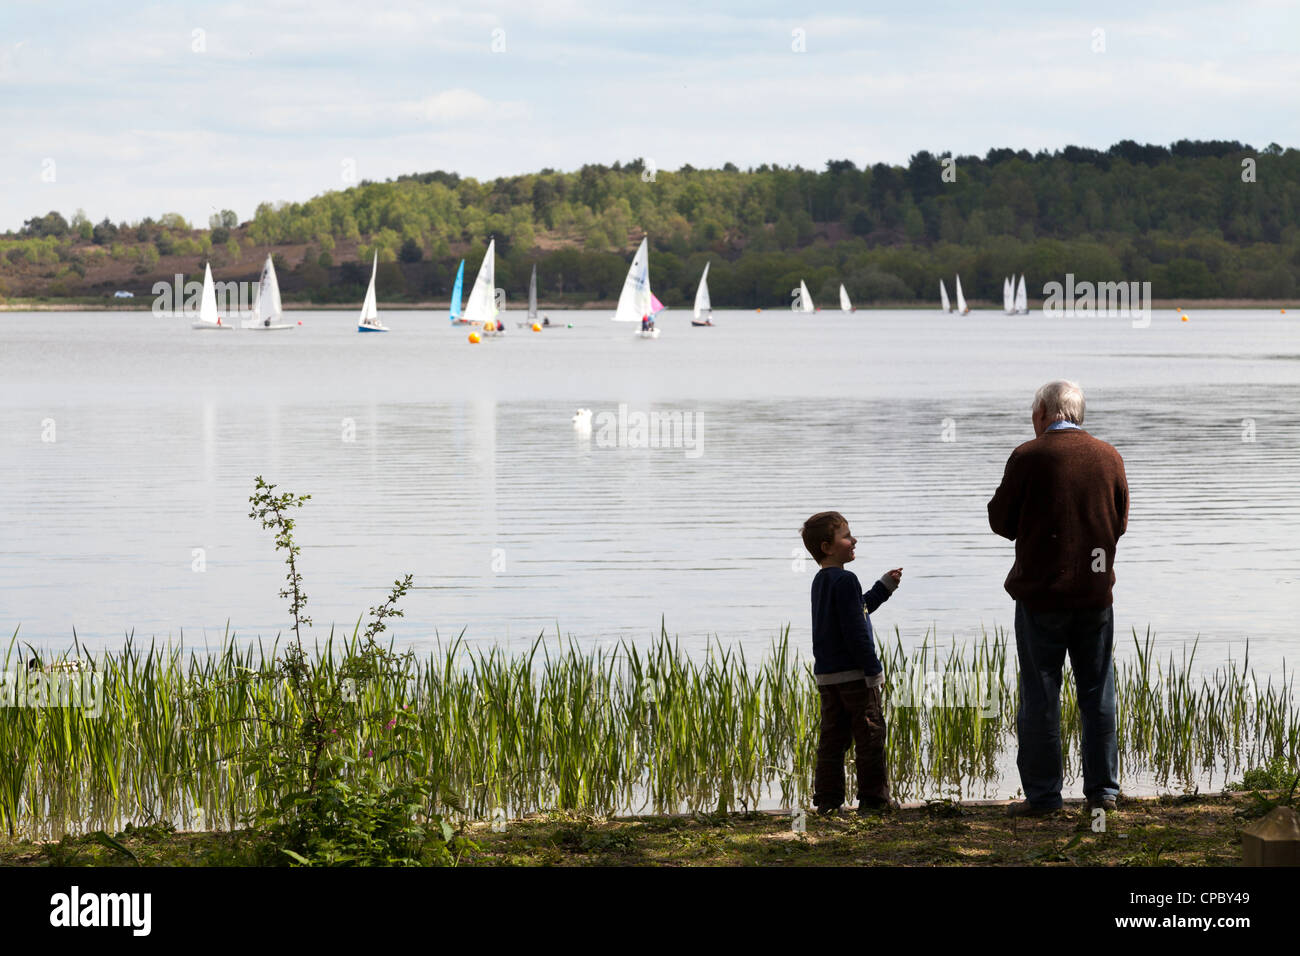 Grandfather and grandson feeding ducks at Frensham Pond with sail boats on lake. - Stock Image